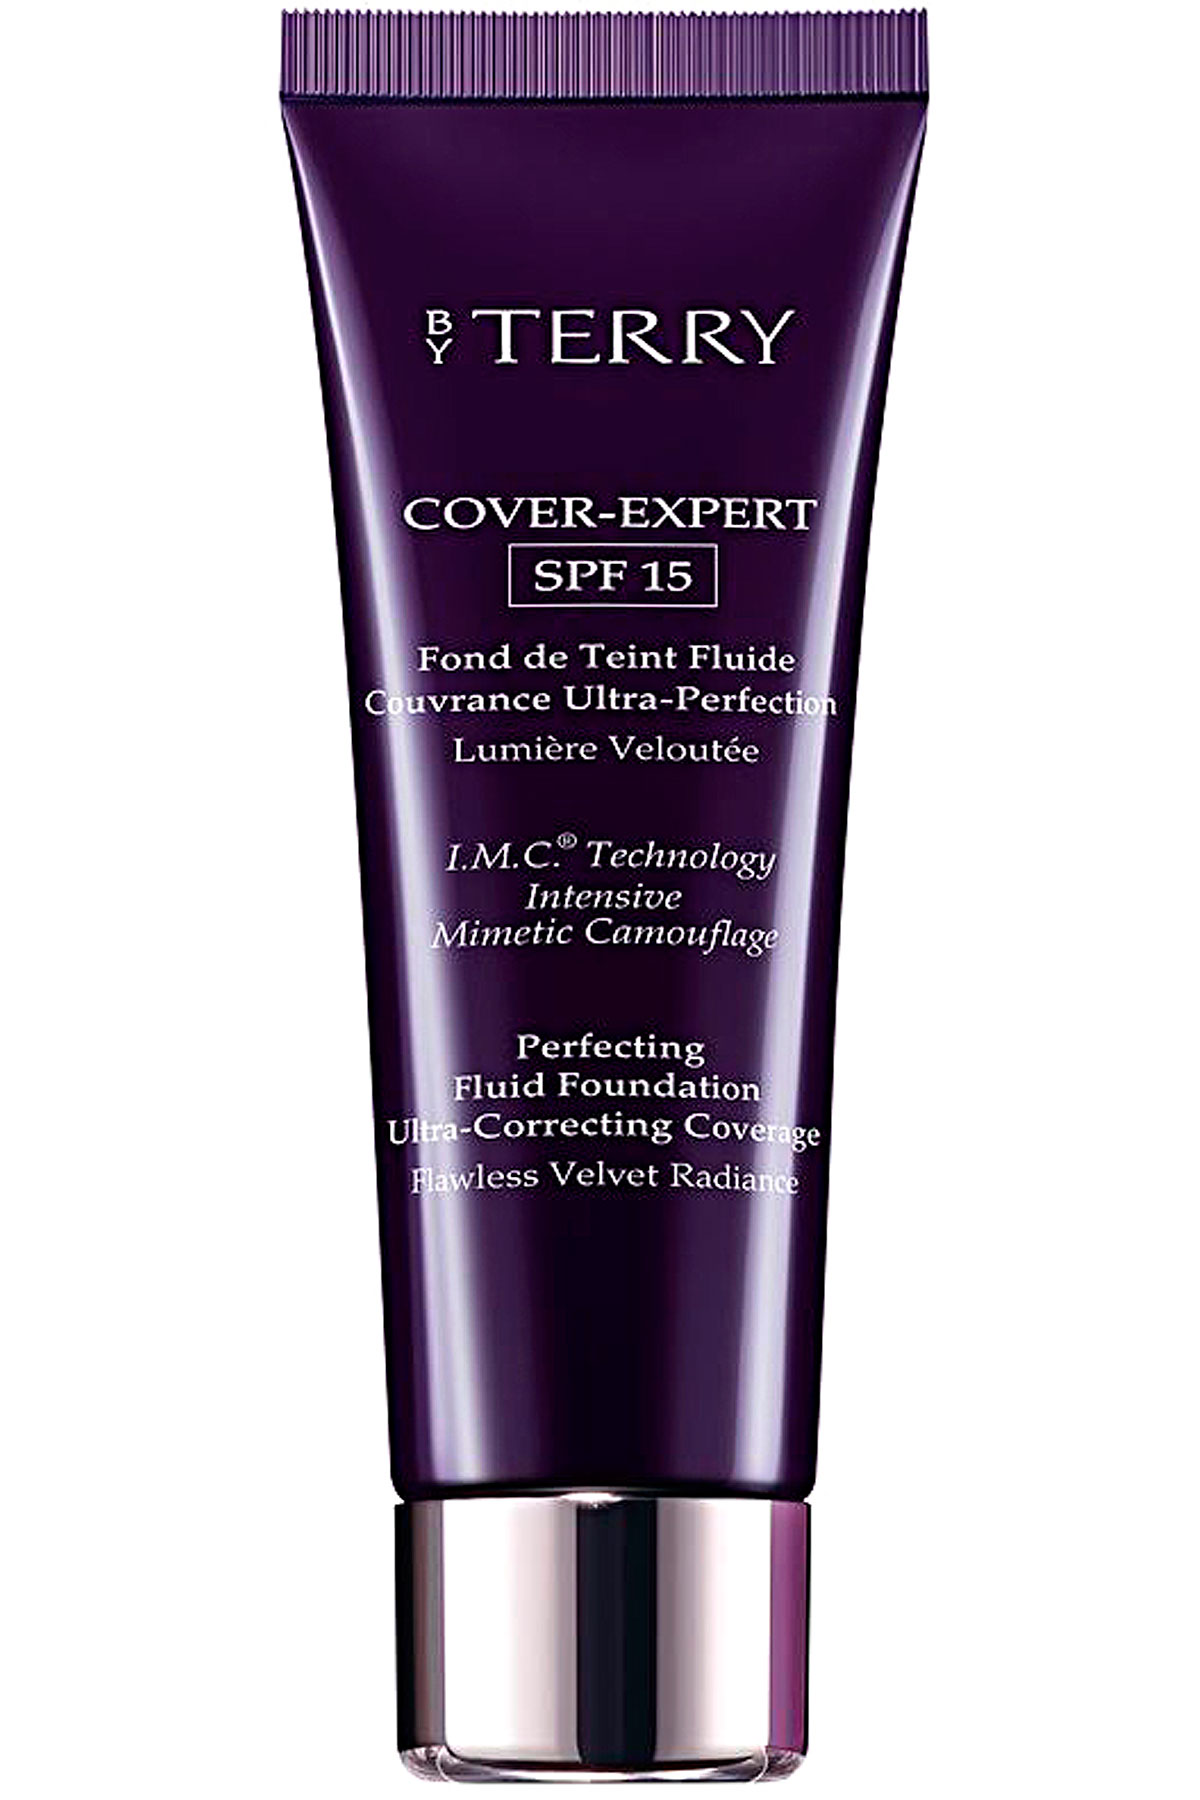 By Terry Makeup for Women, Cover-expert Spf15 - N.3 Cream Beige - 35 Ml, Cream Beige, 2019, 35 ml